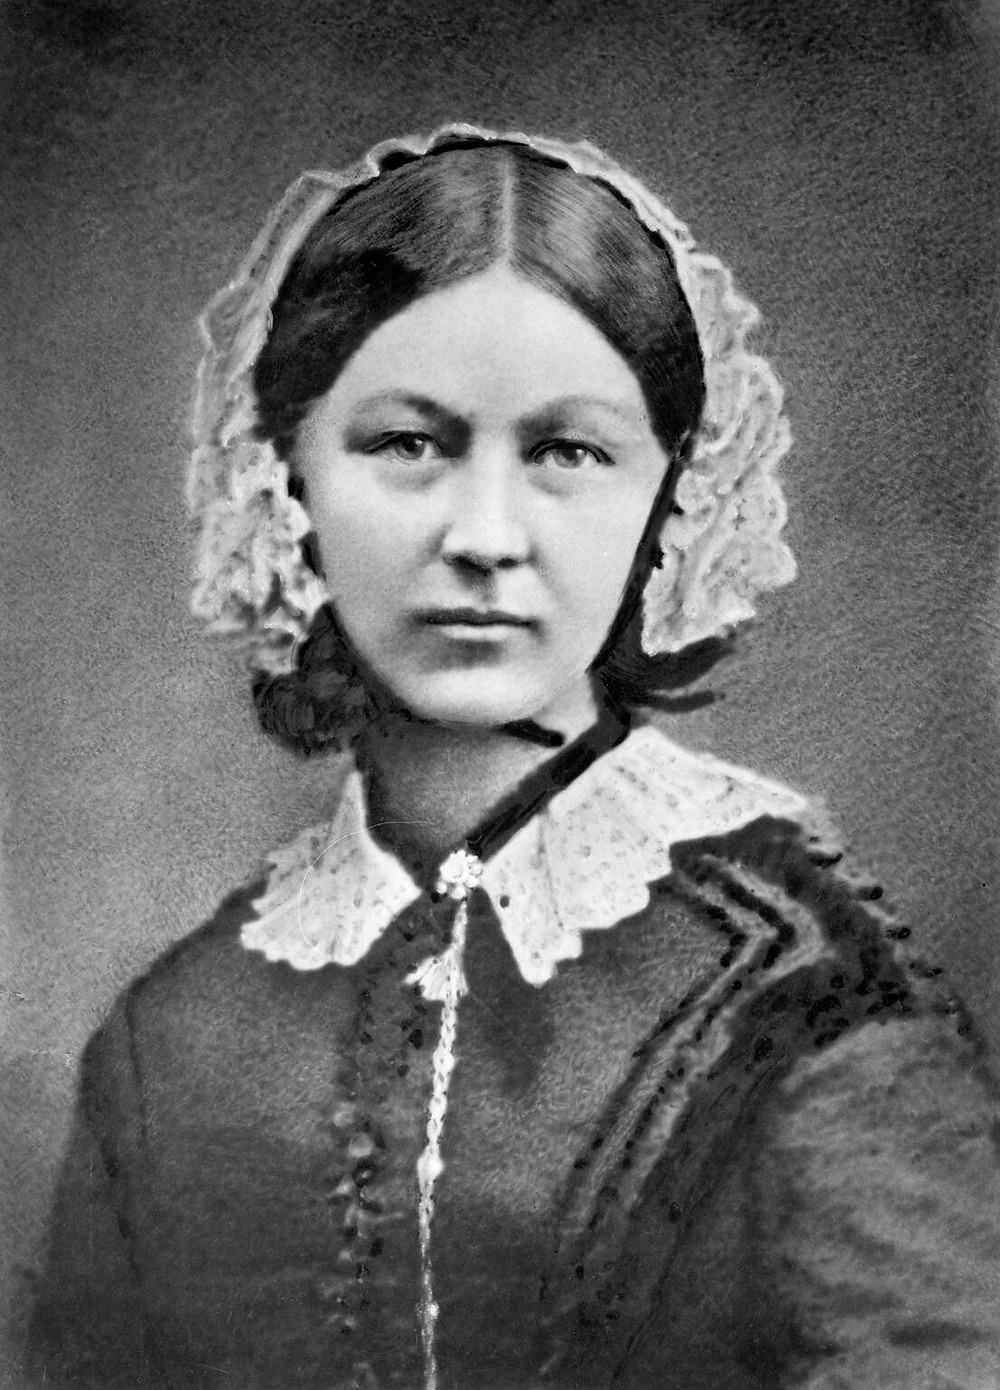 Florence Nightingale, Mother of Modern Nursing